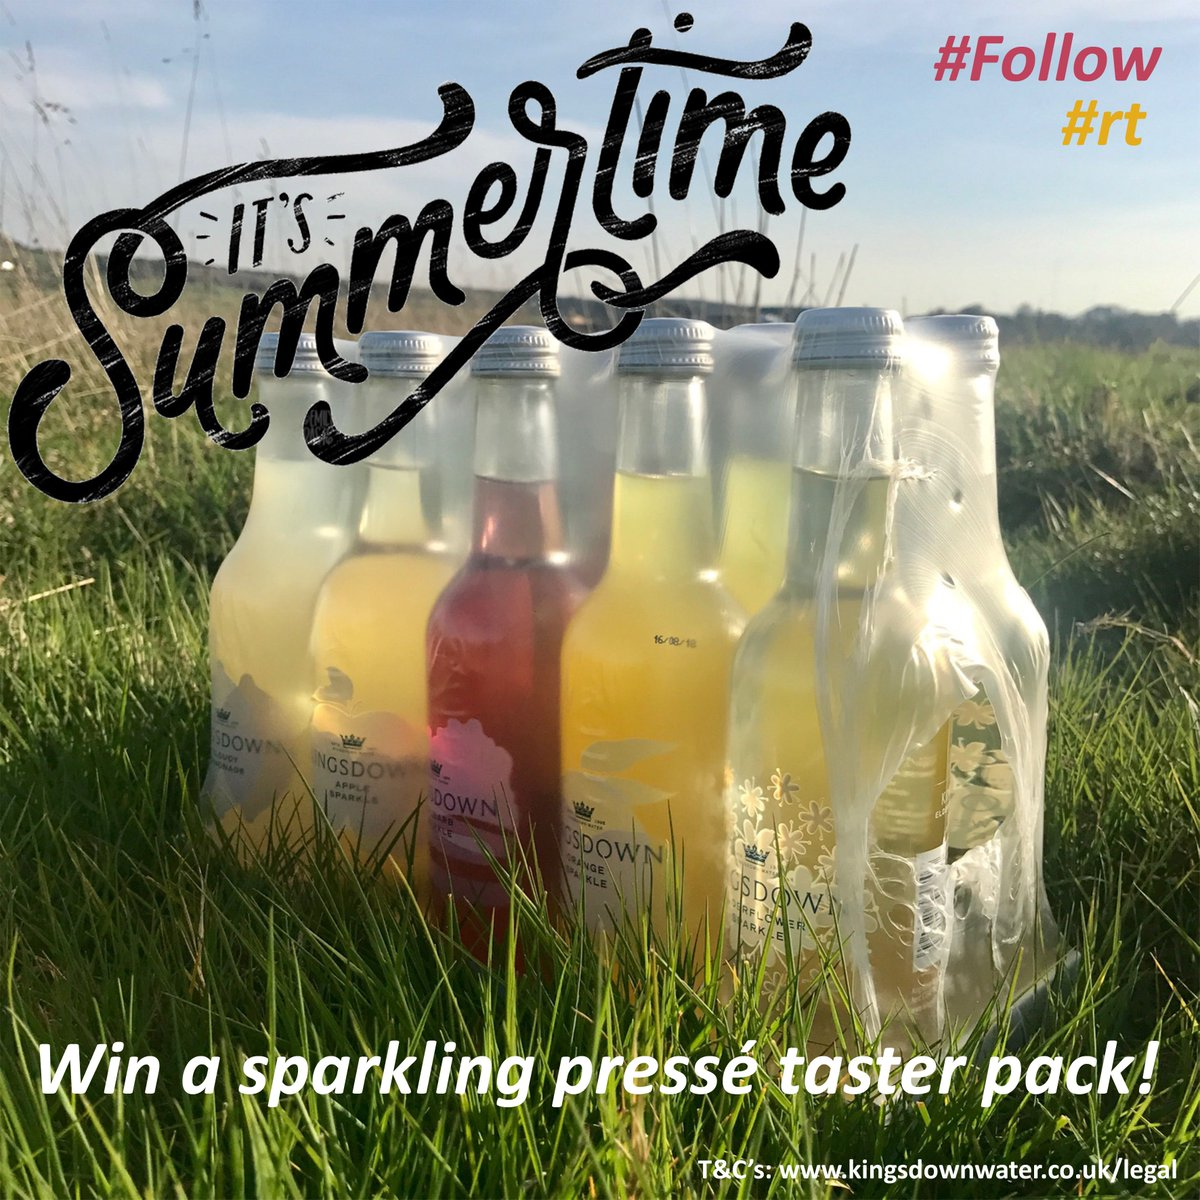 *WIN* The summer is finally nearly upon us and the sun is shining at last ☀️ We're celebrating by giving you a chance to #win a @kingsdownwater sparkling pressé taster pack! Simply #follow & #rt for your chance to win! #Competition ends 31/05/19 #summertime #GIVEAWAY #freebies